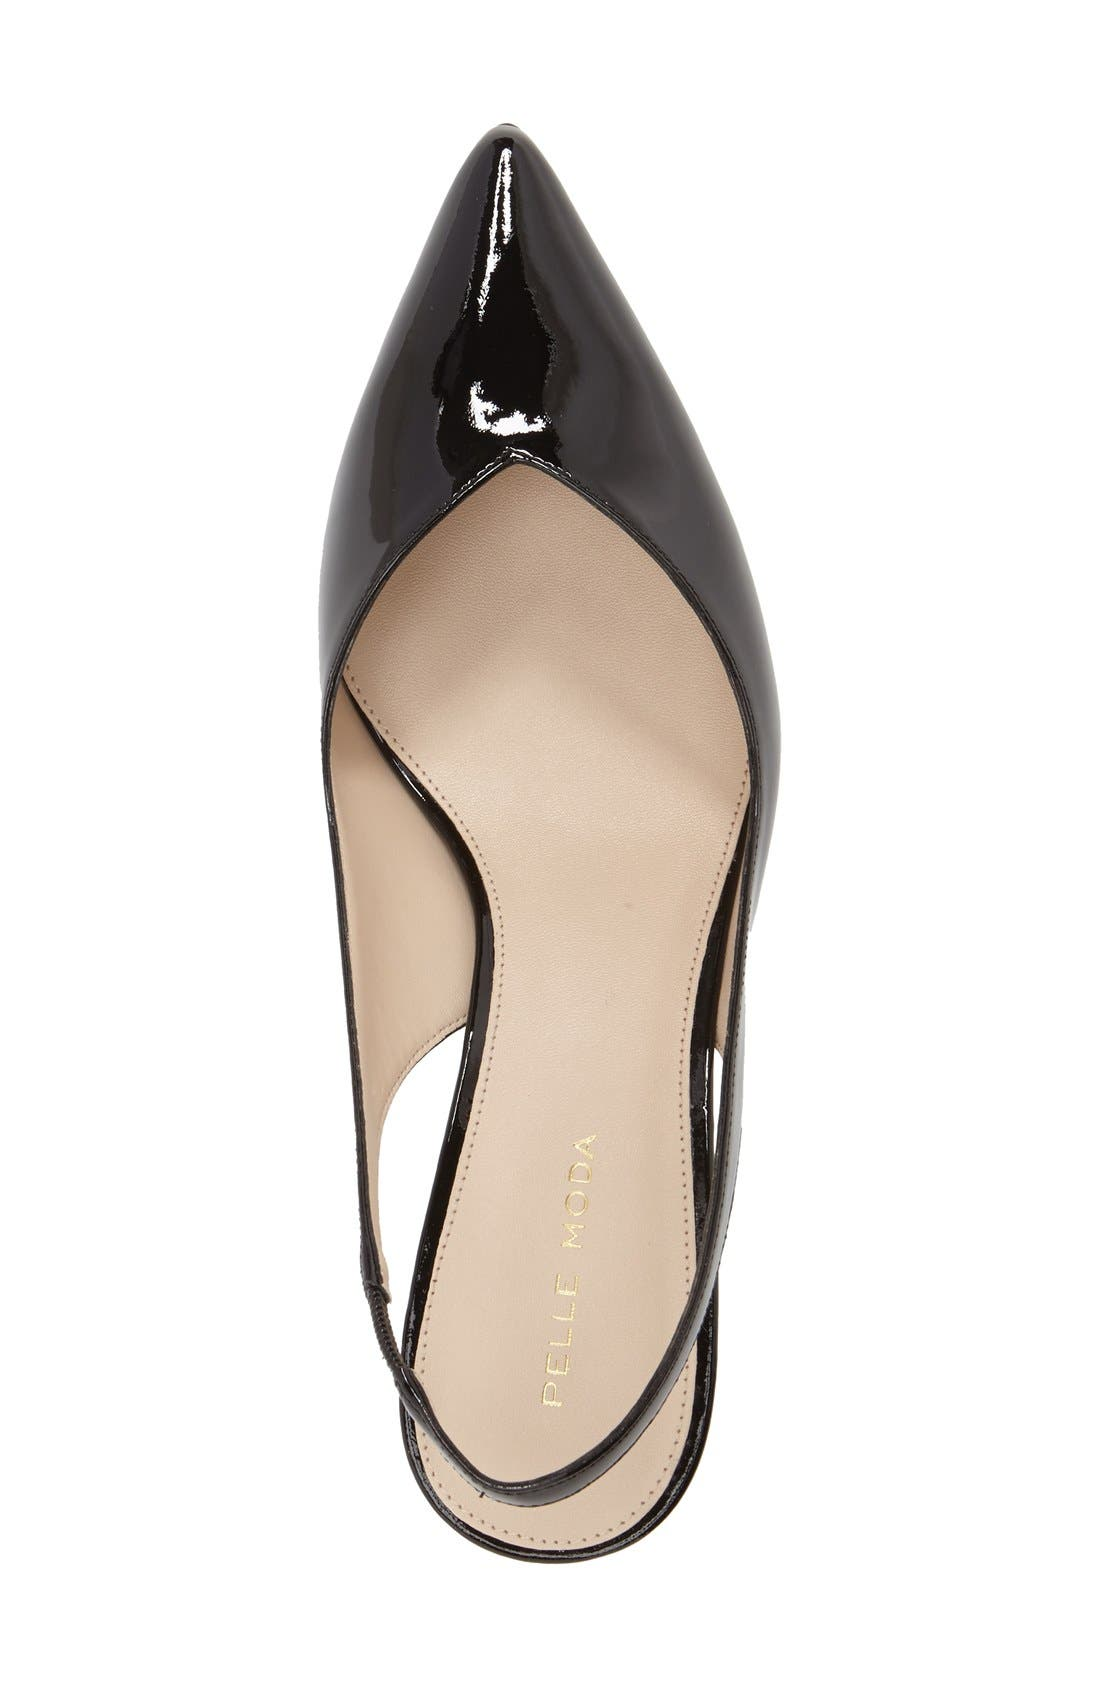 'Oasis' Slingback Pump,                             Alternate thumbnail 3, color,                             Black Patent Leather